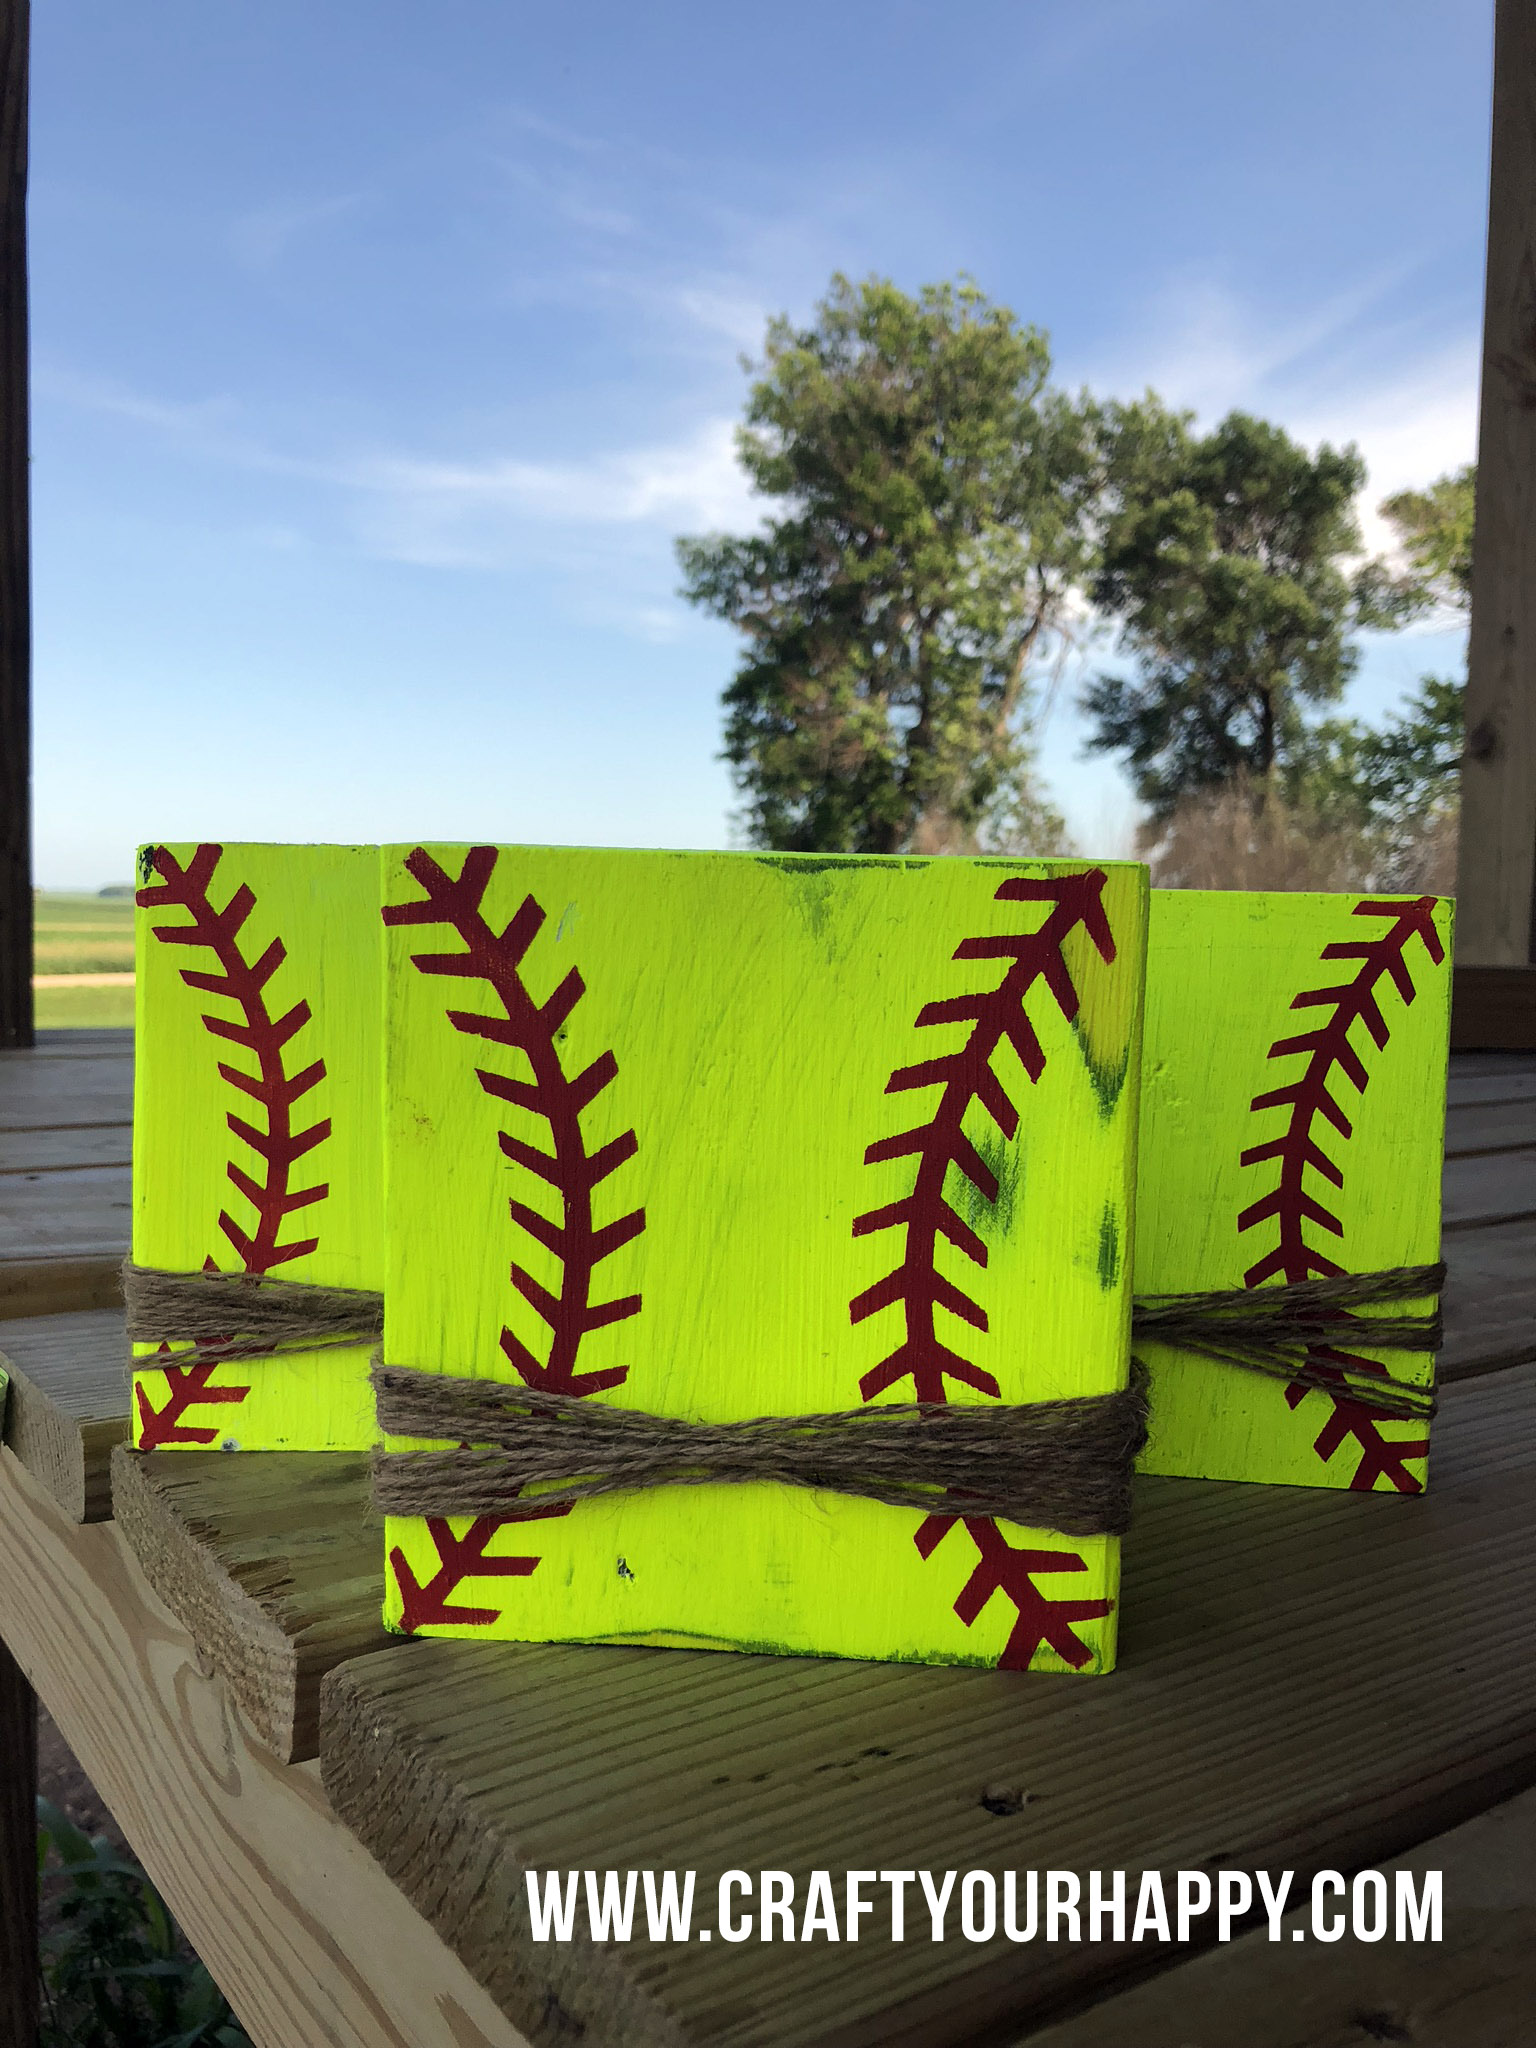 Craft Your Happy - How To Make Softball Picture Holders